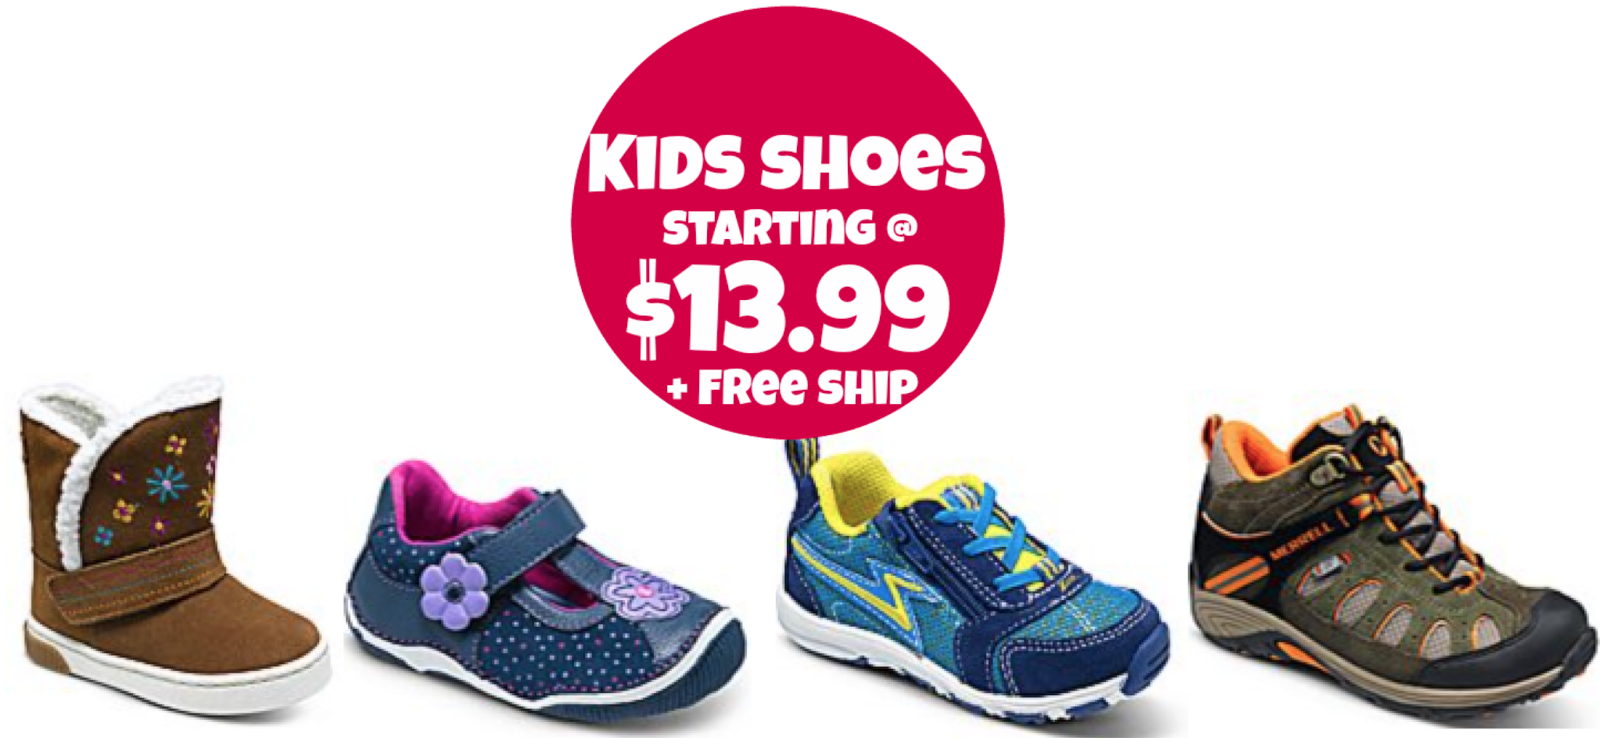 http://www.thebinderladies.com/2015/01/striderite-up-to-60-off-kids-shoes.html#.VLlqK4fduyM